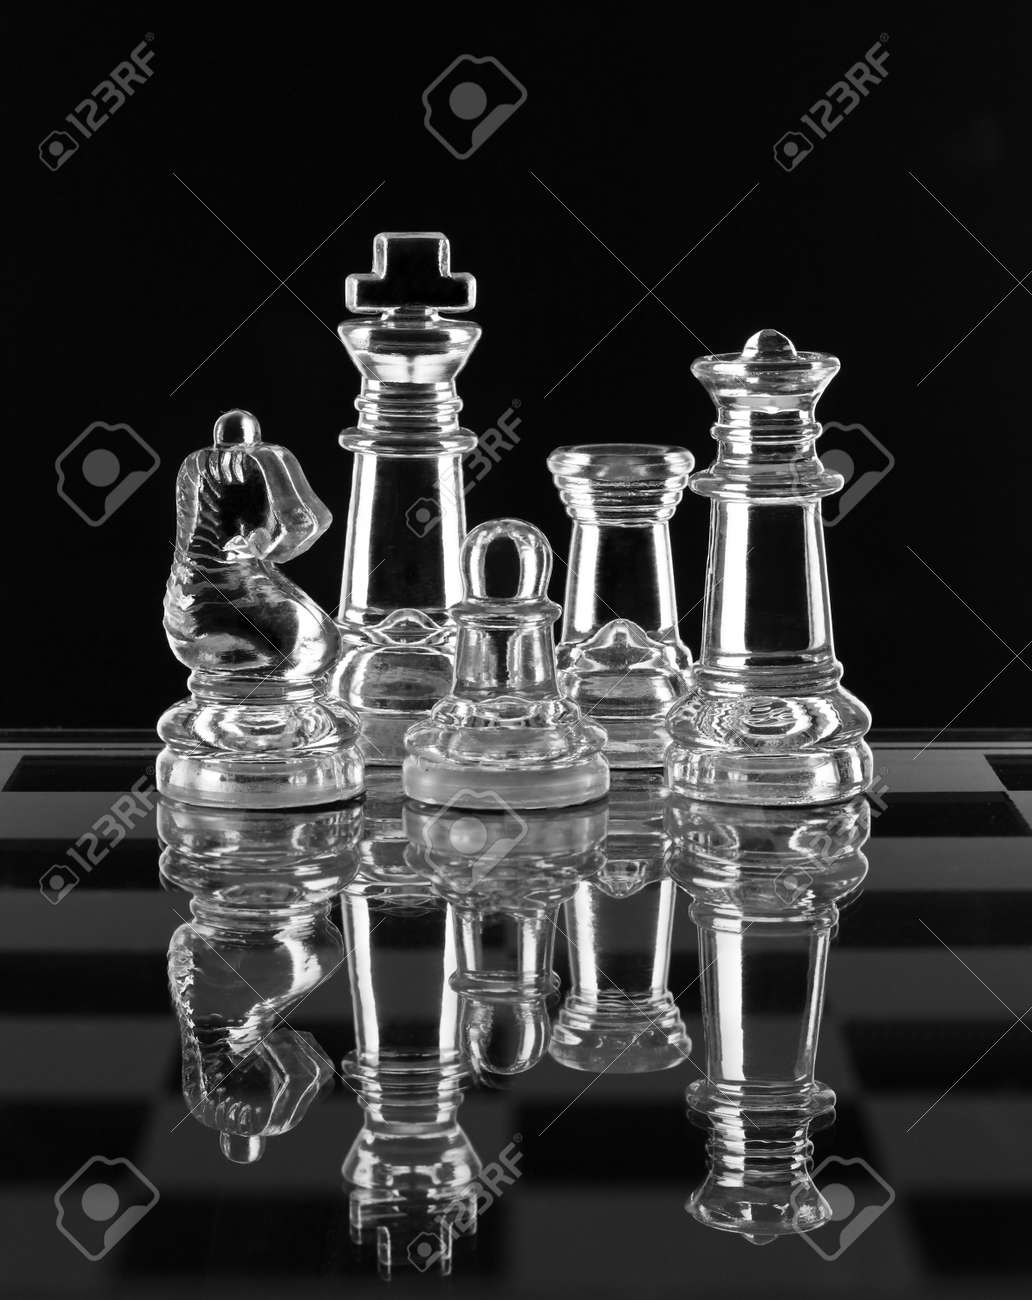 Glass chess family with reflection on black background Stock Photo - 12834345